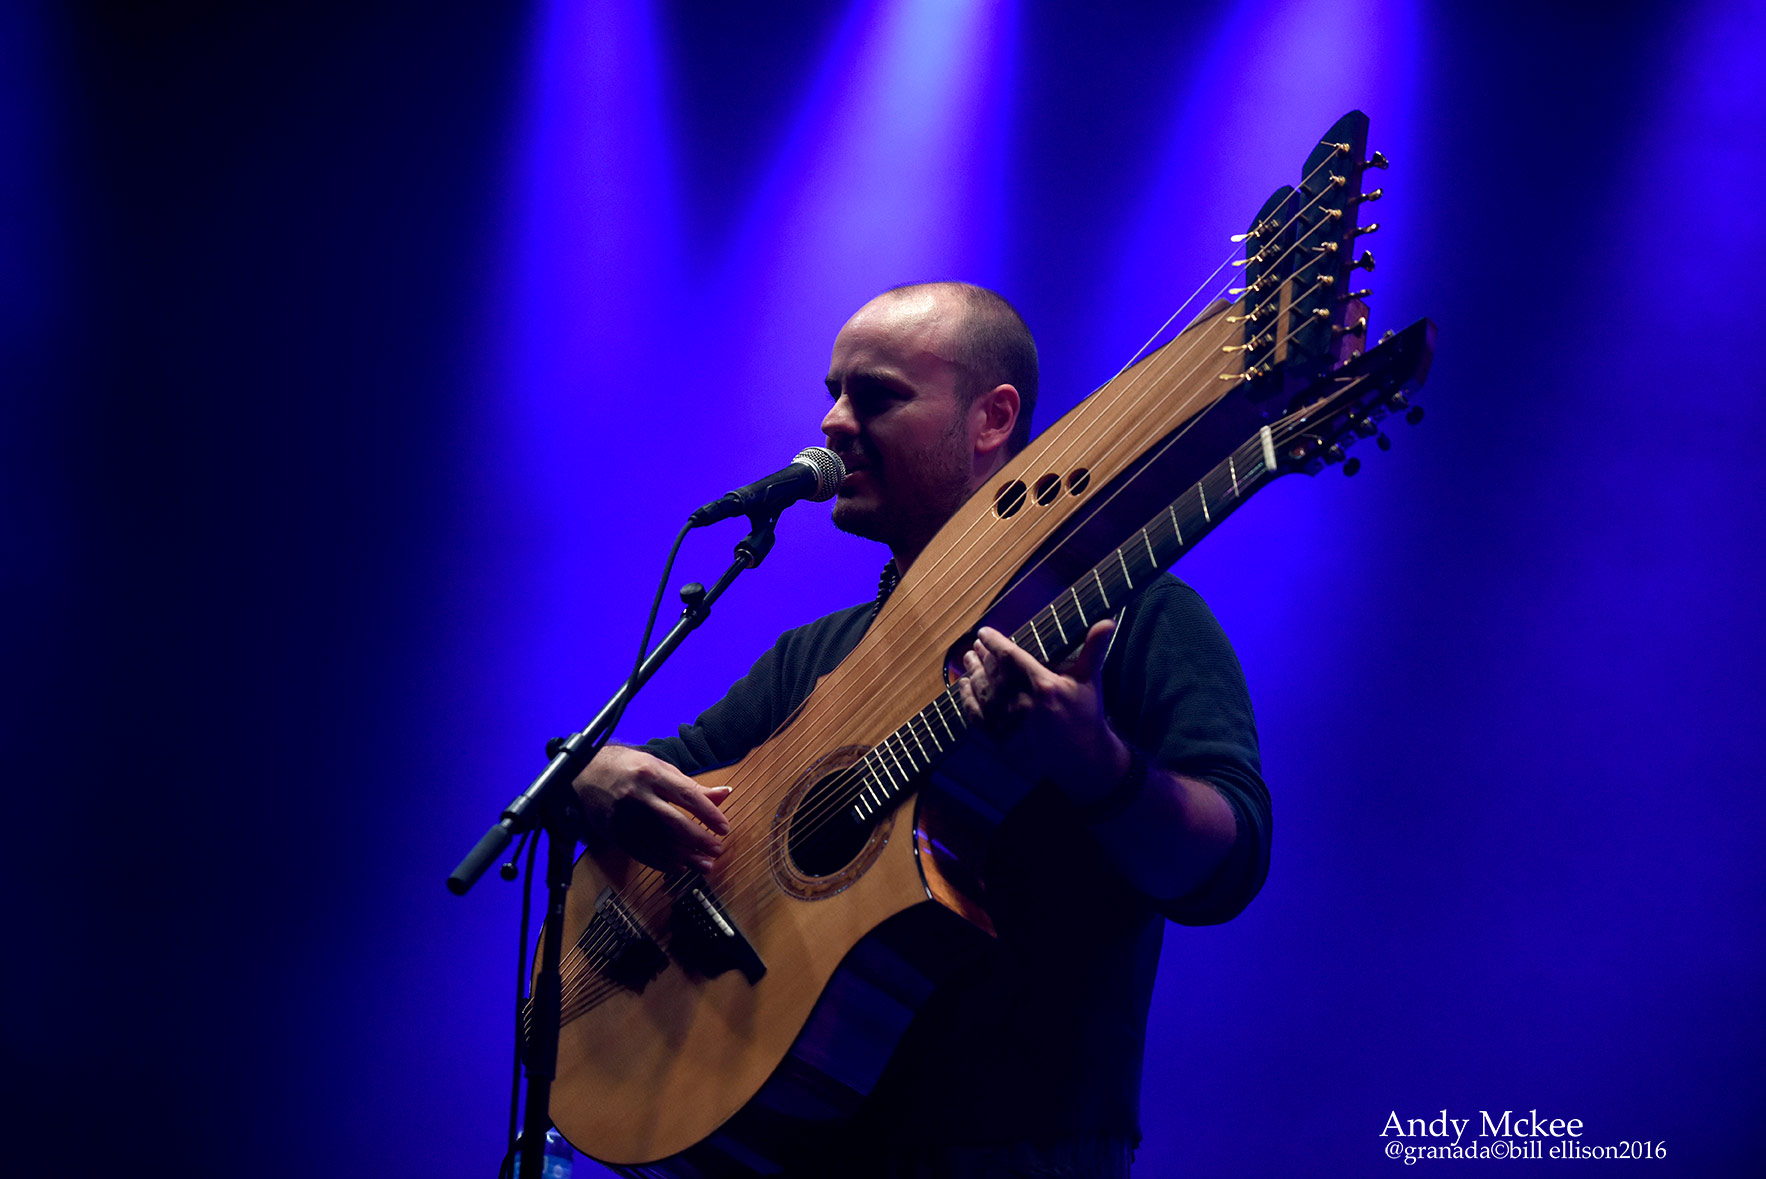 Acoustic Genius Andy McKee Returns To The Uk